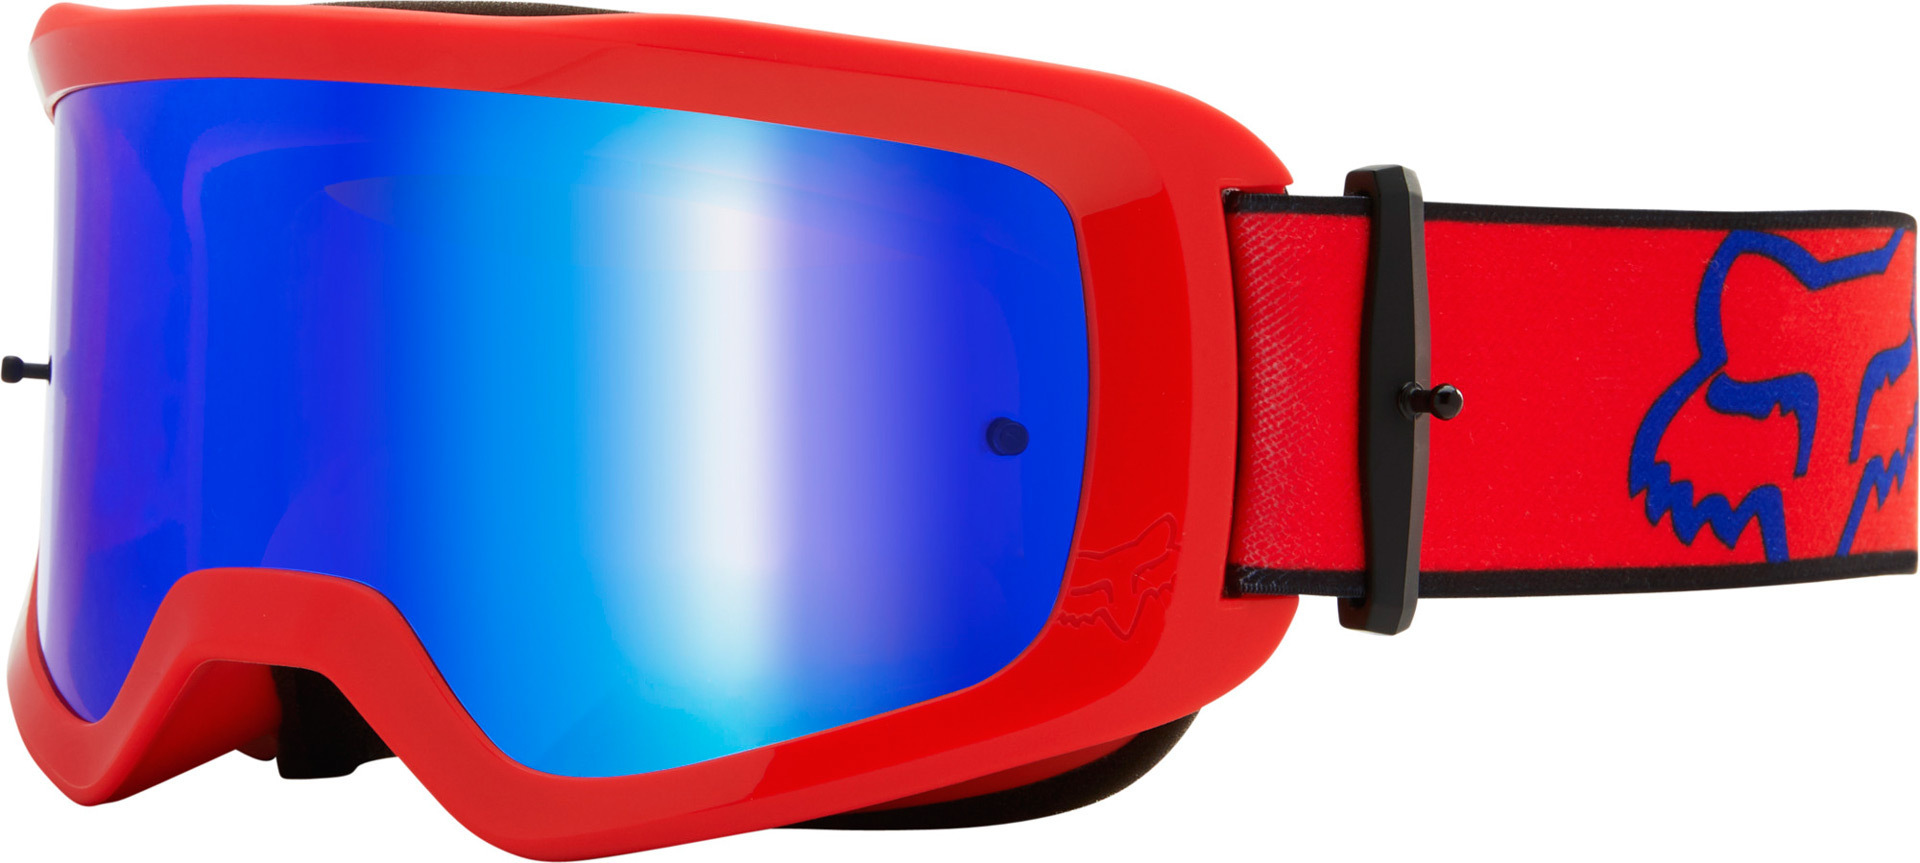 FOX Main Oktiv Spark Tear-Off Motocross Brille, rot, rot